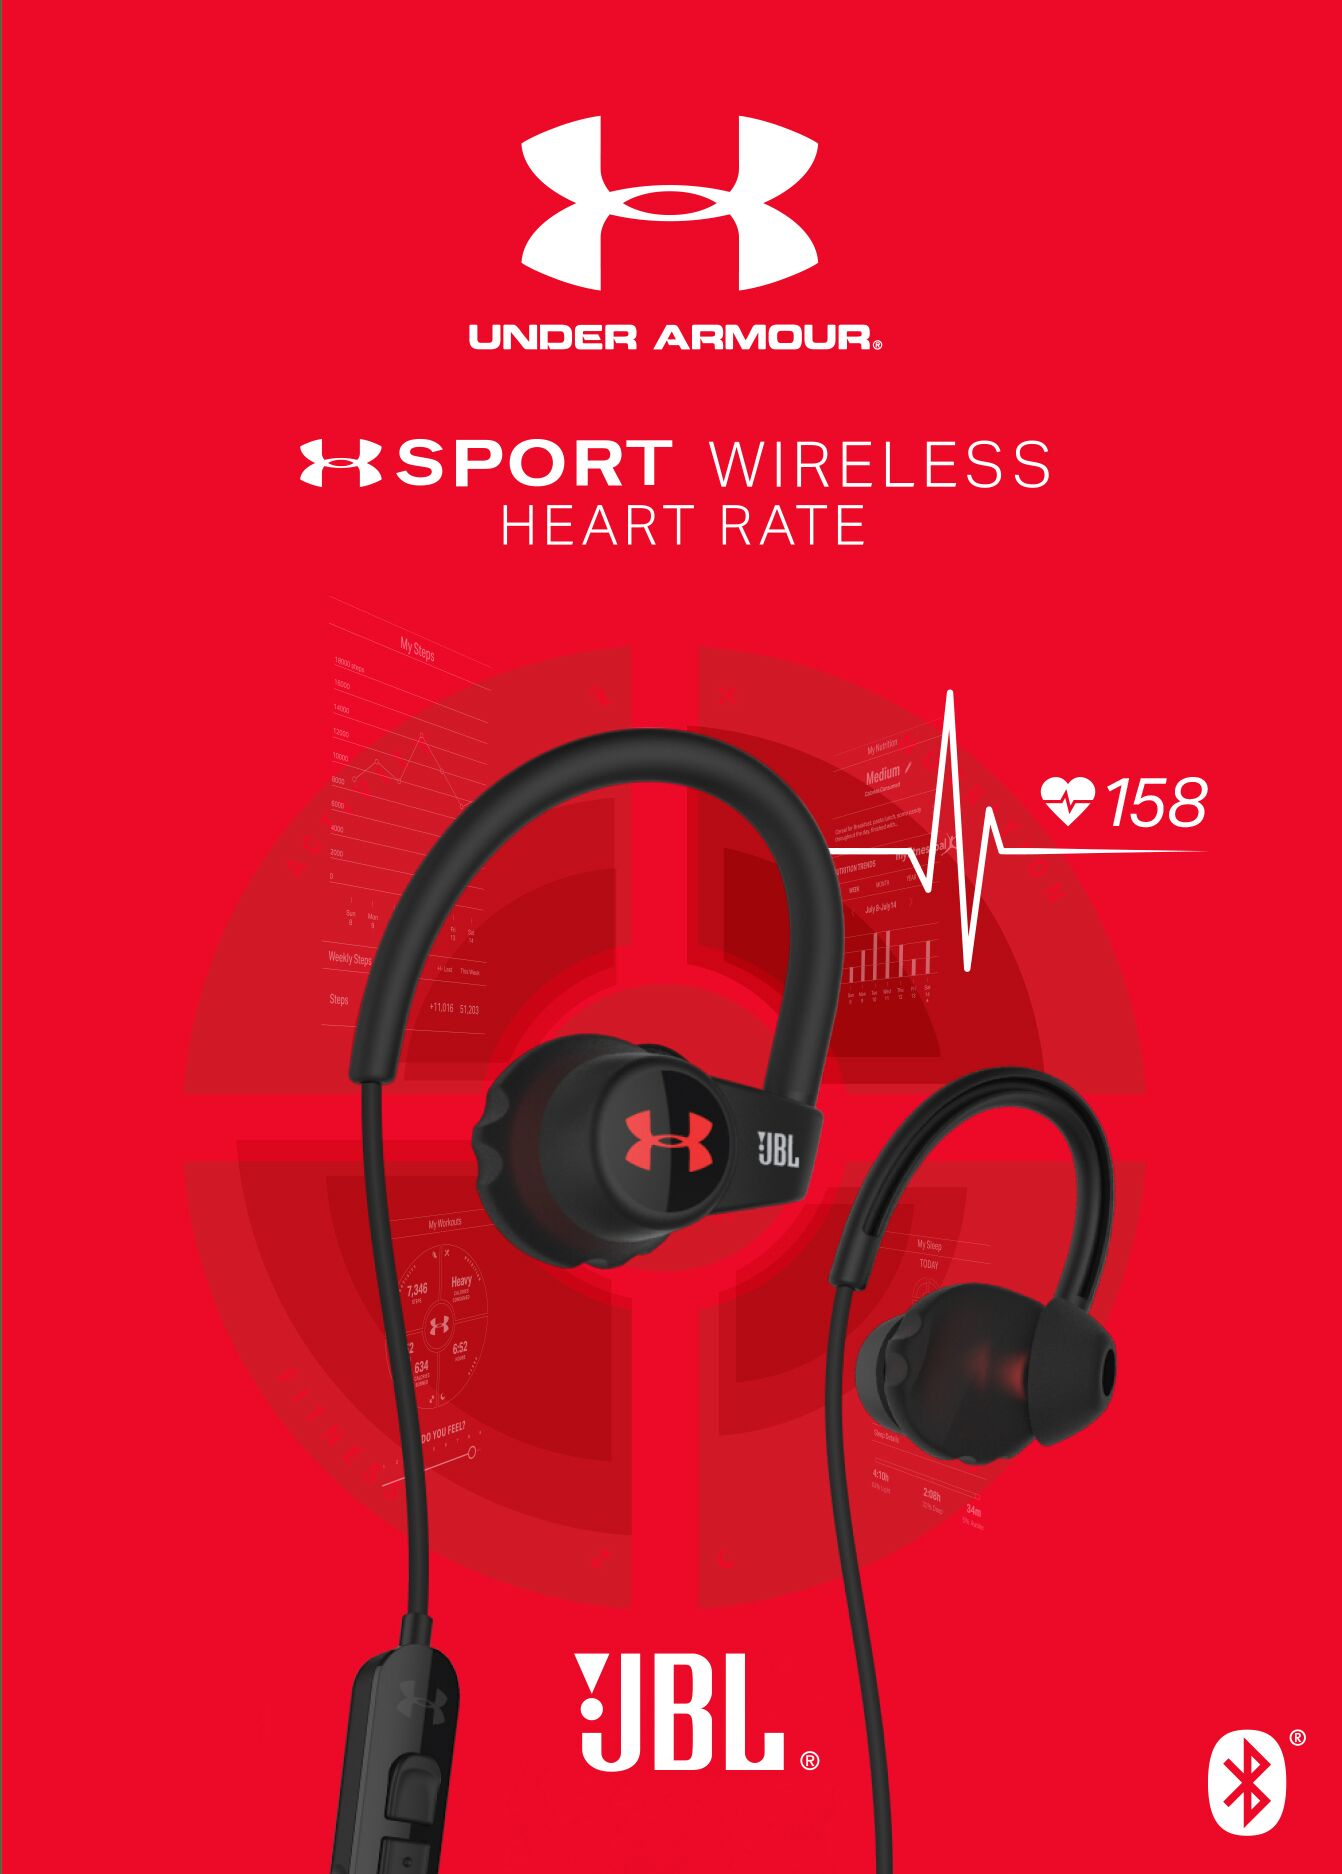 e73310effc5 Under Armour wireless heart rate JBL headphones review | SI.com